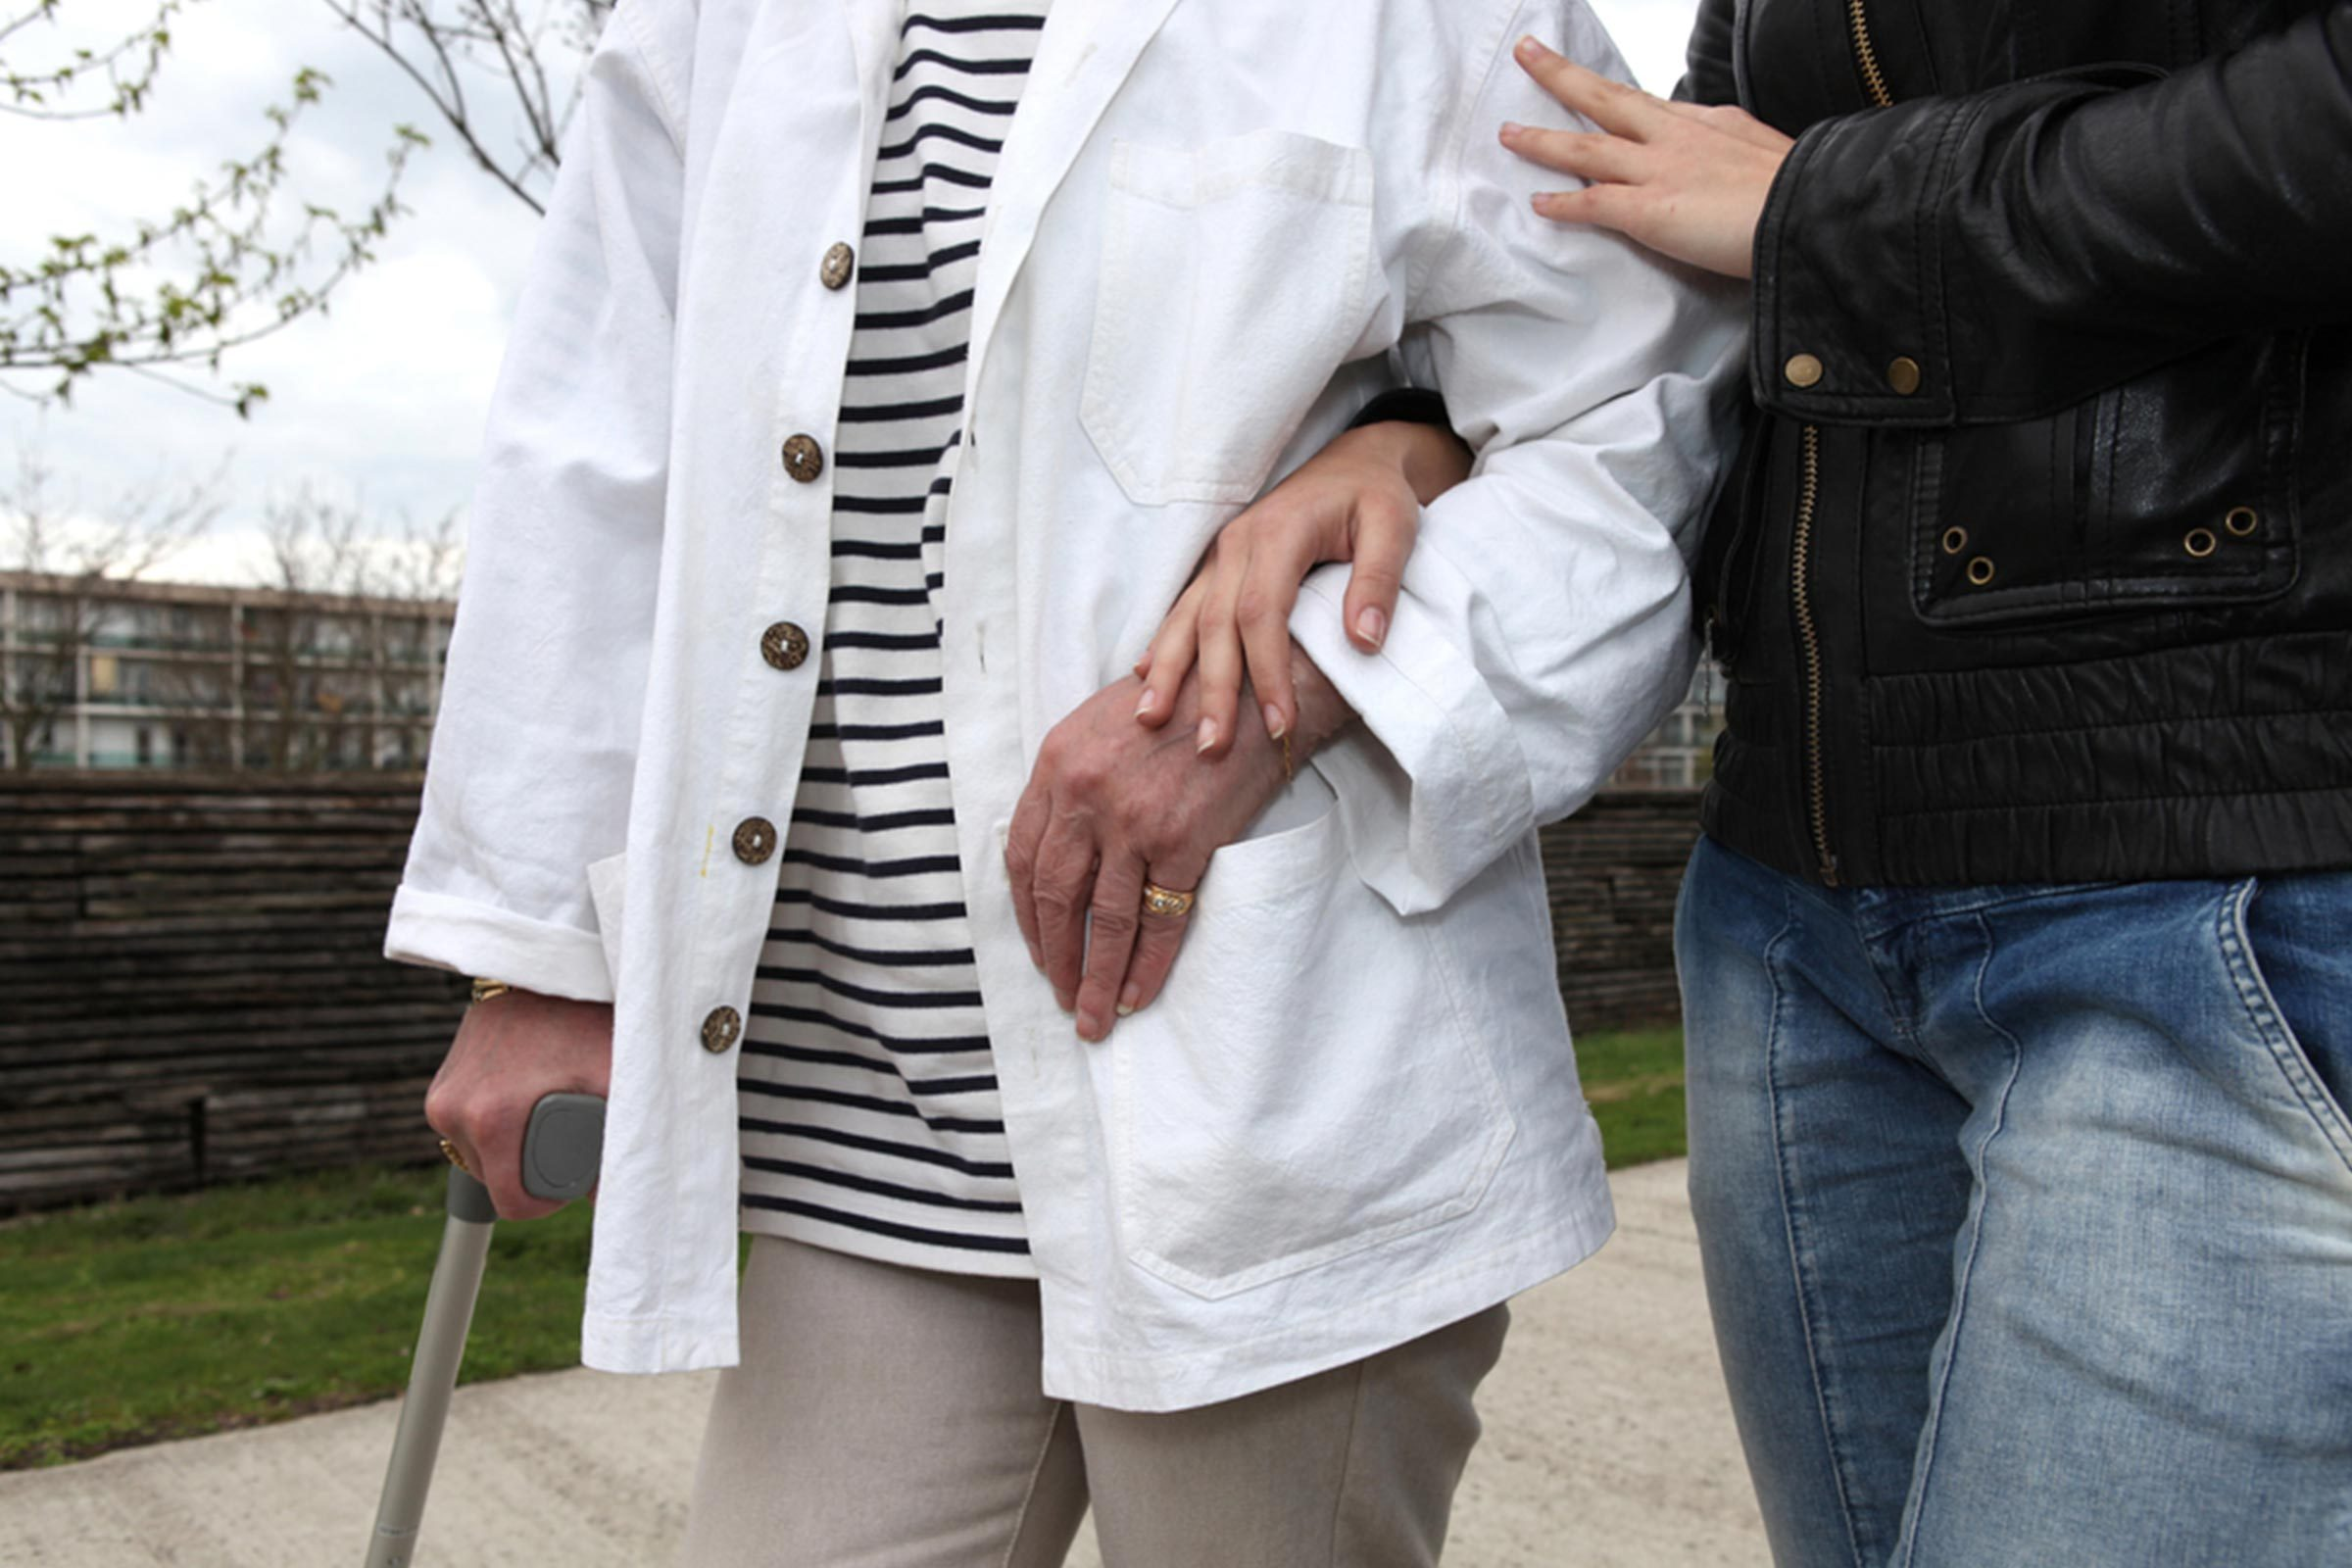 older woman walking with cane with help from friend